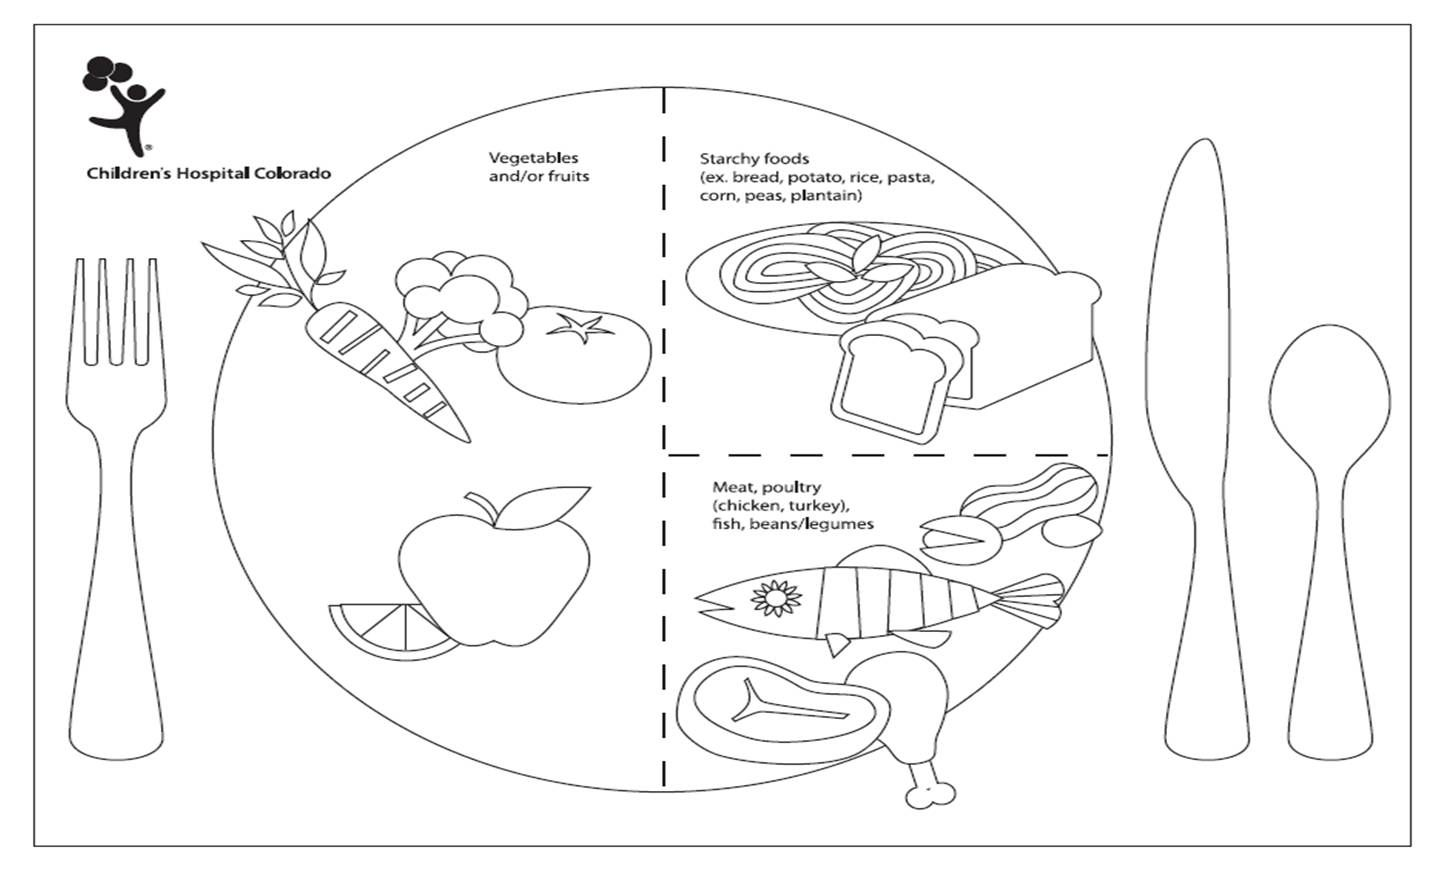 Print Out This Coloring Placemat To Teach Your Kiddos